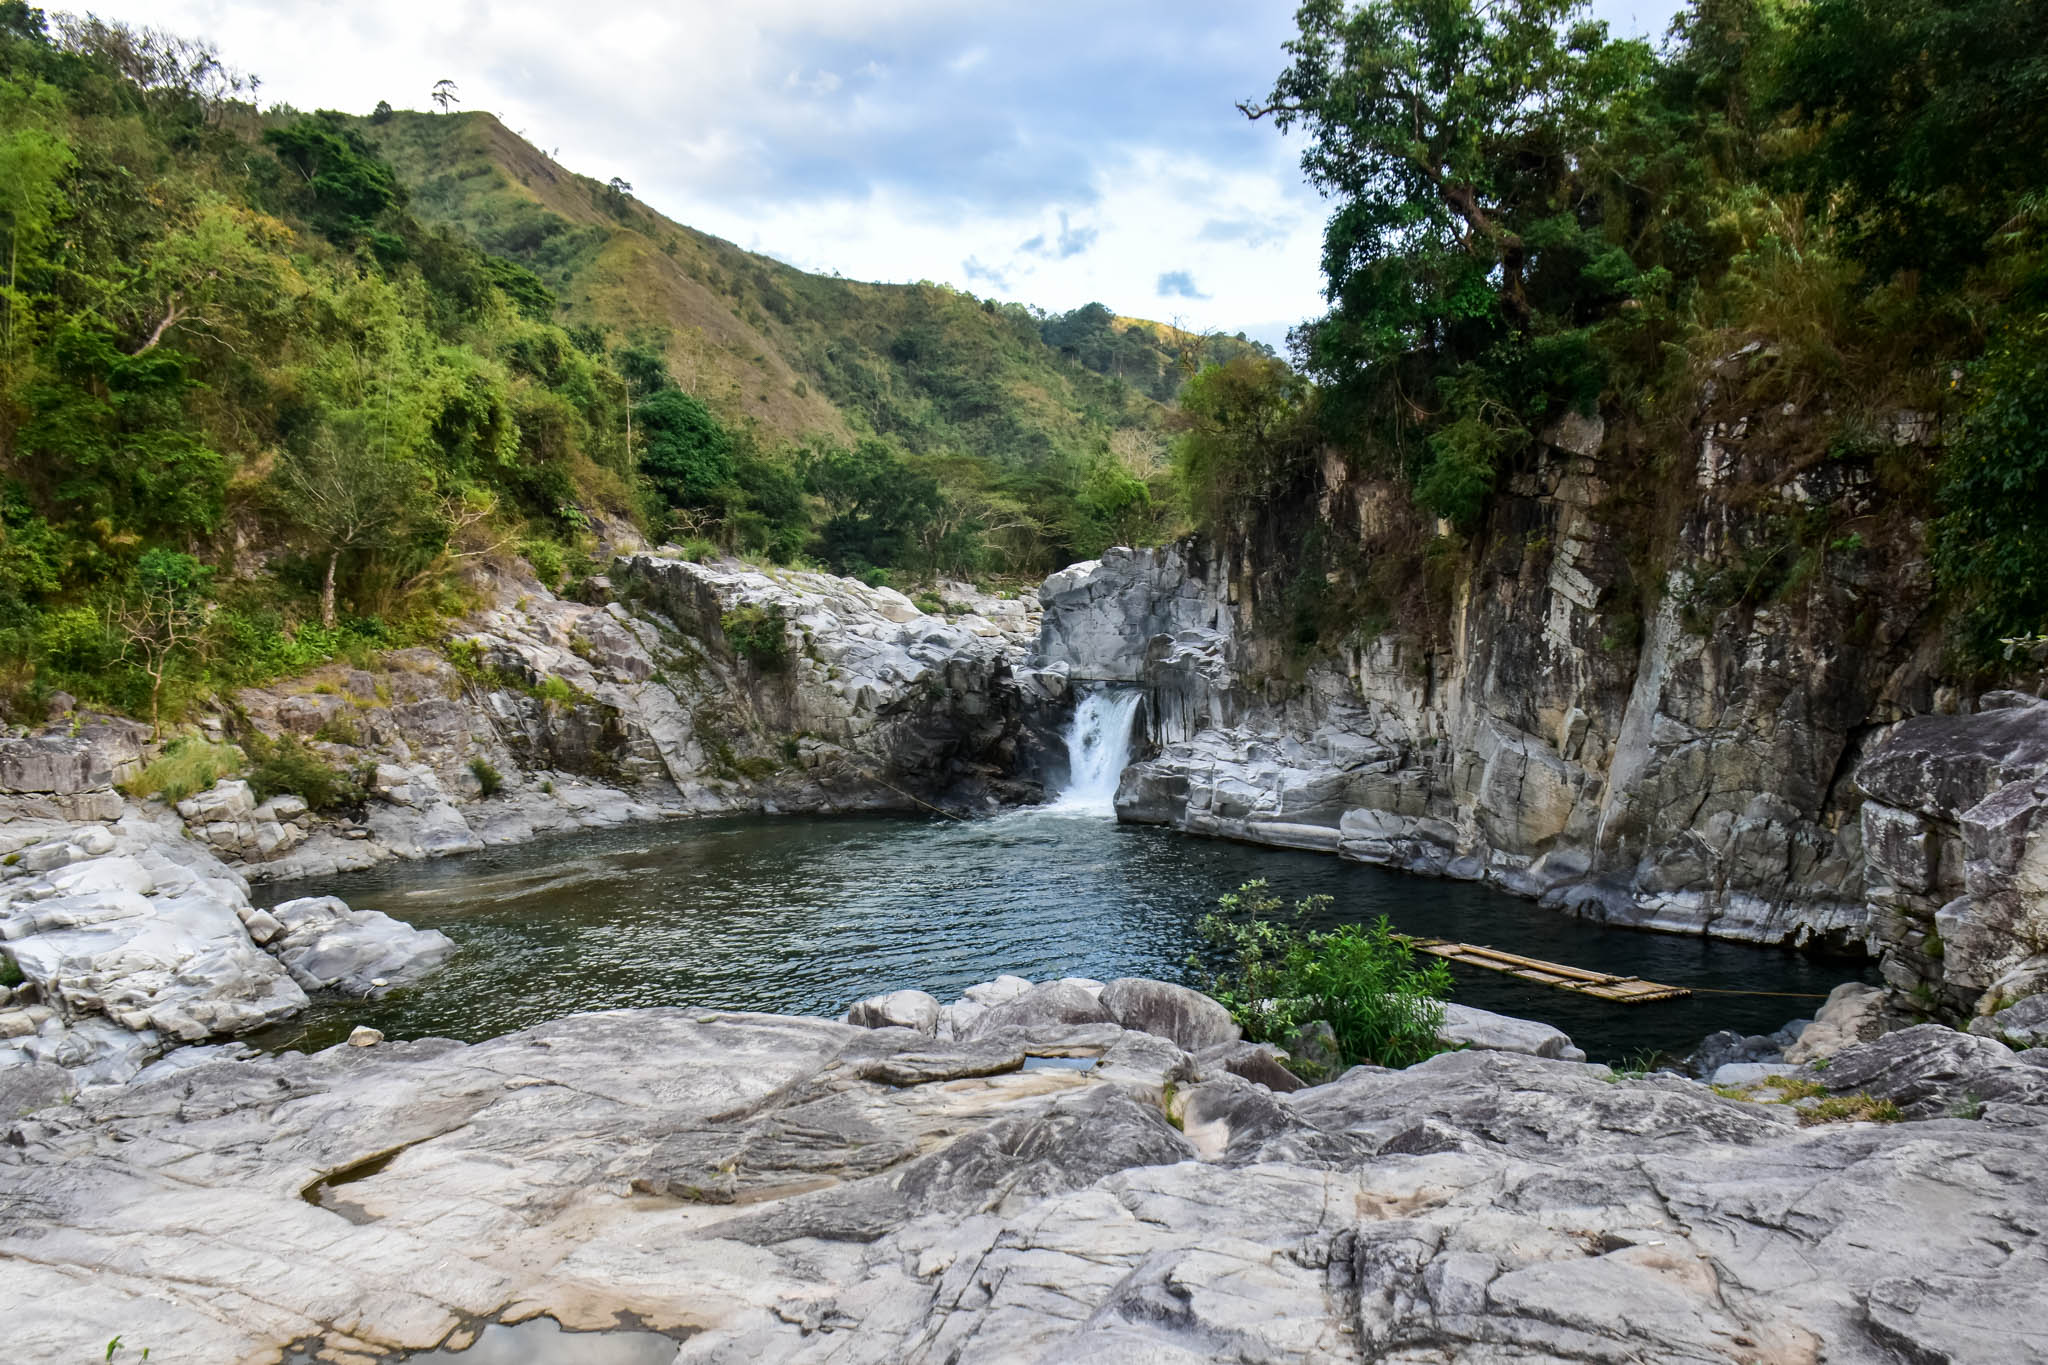 kili falls abra 13 (22 of 1)